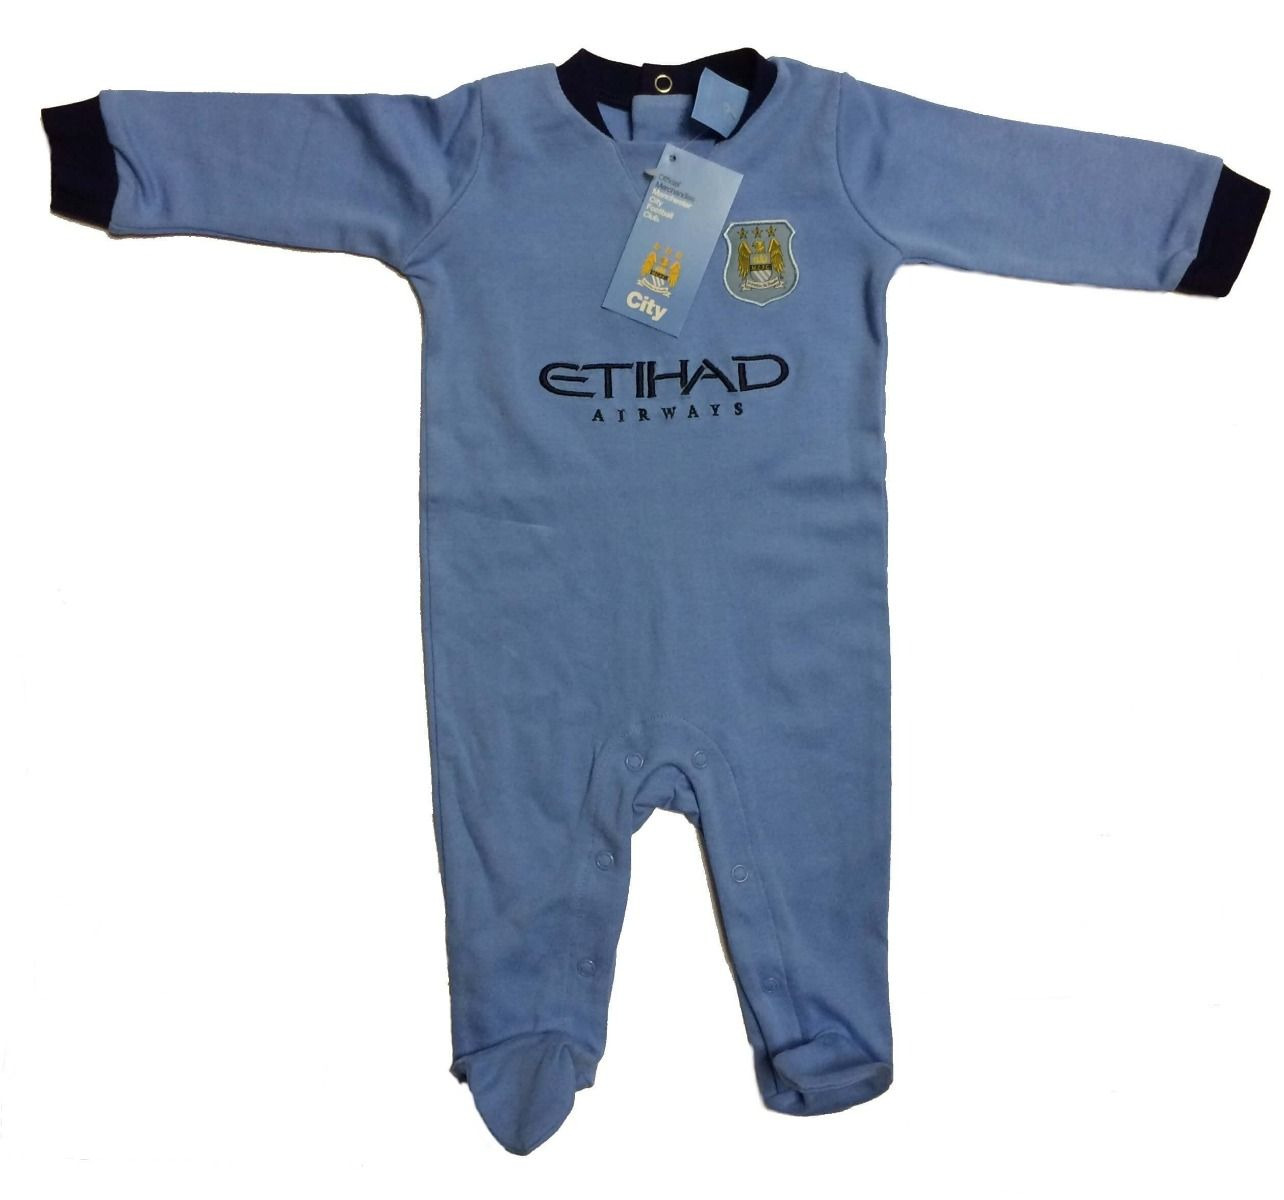 MANCHESTER CITY FC BABY VEST SET TWIN PACK SLEEPSUIT OFFICIAL PRODUCT 2017